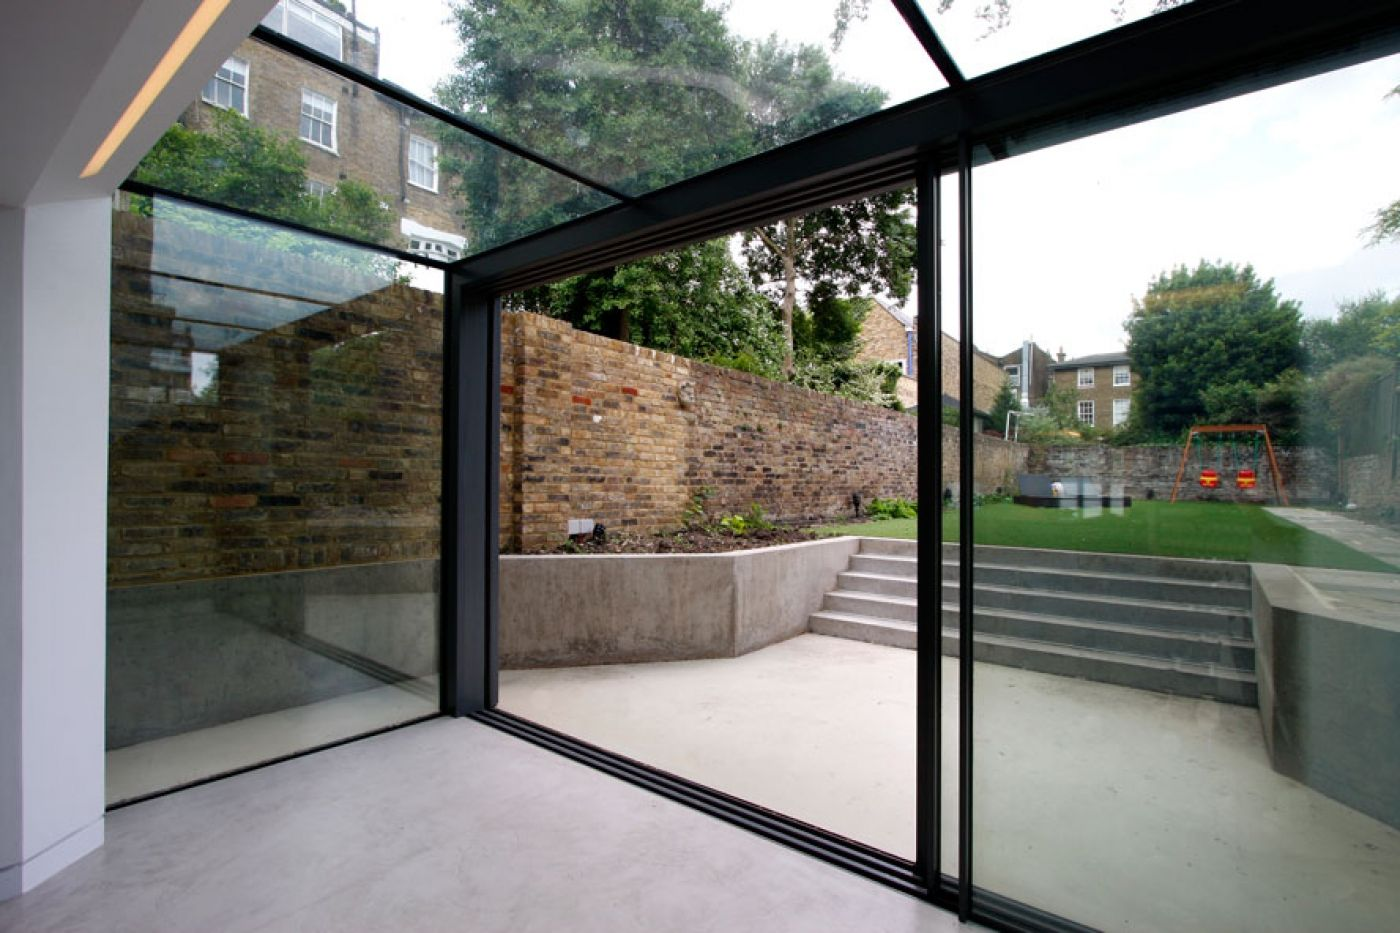 Frameless glass fin facade frameless glass sliding doors amp pool - The Versatile Glass Extension On This Traditional Home Uses A Glass Roof Frameless Structural Glass